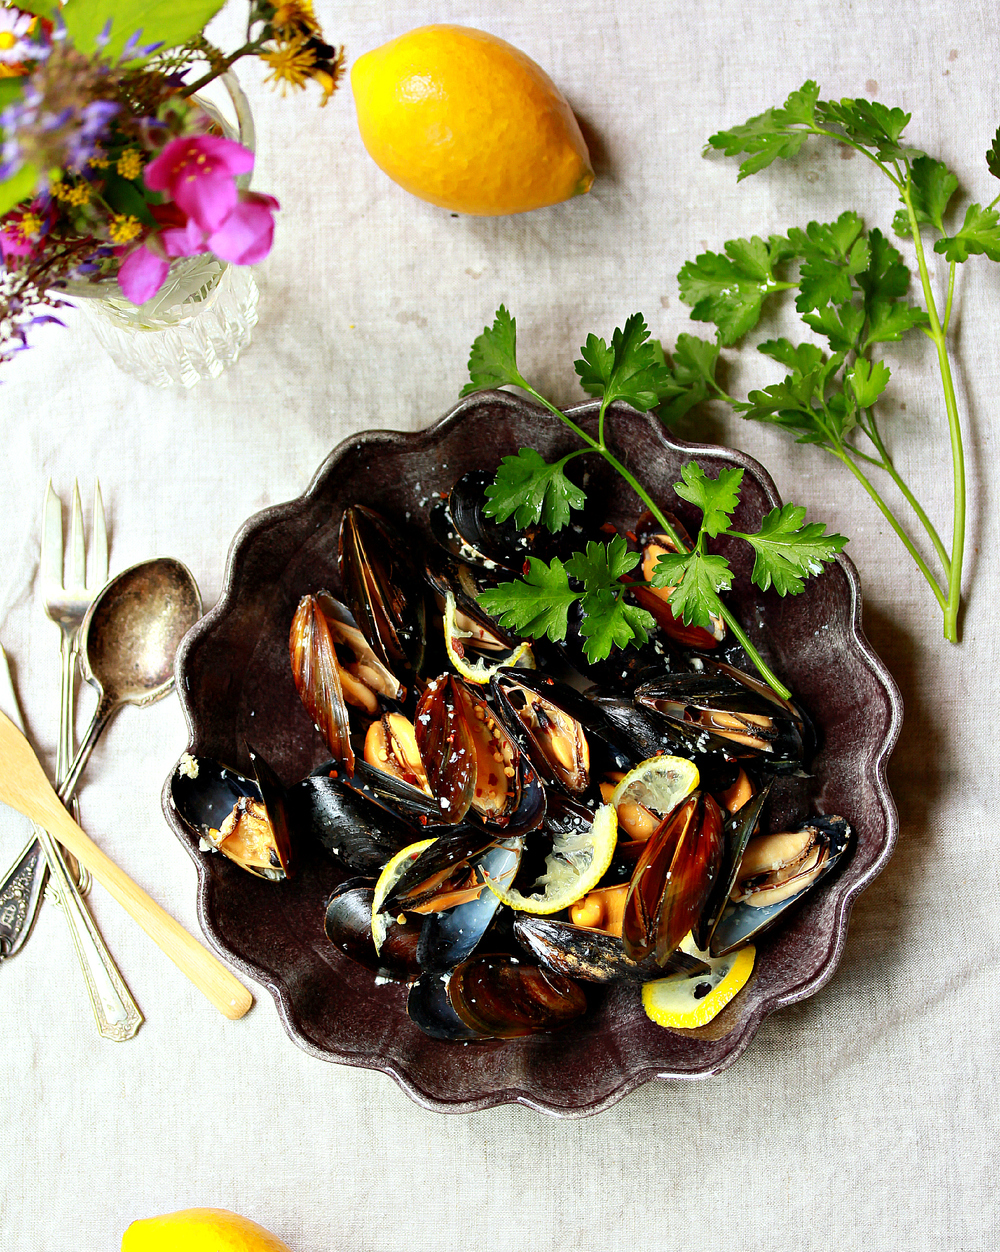 Mussels Steamed in Wine with Lemon & Parsley by Dena T Bray